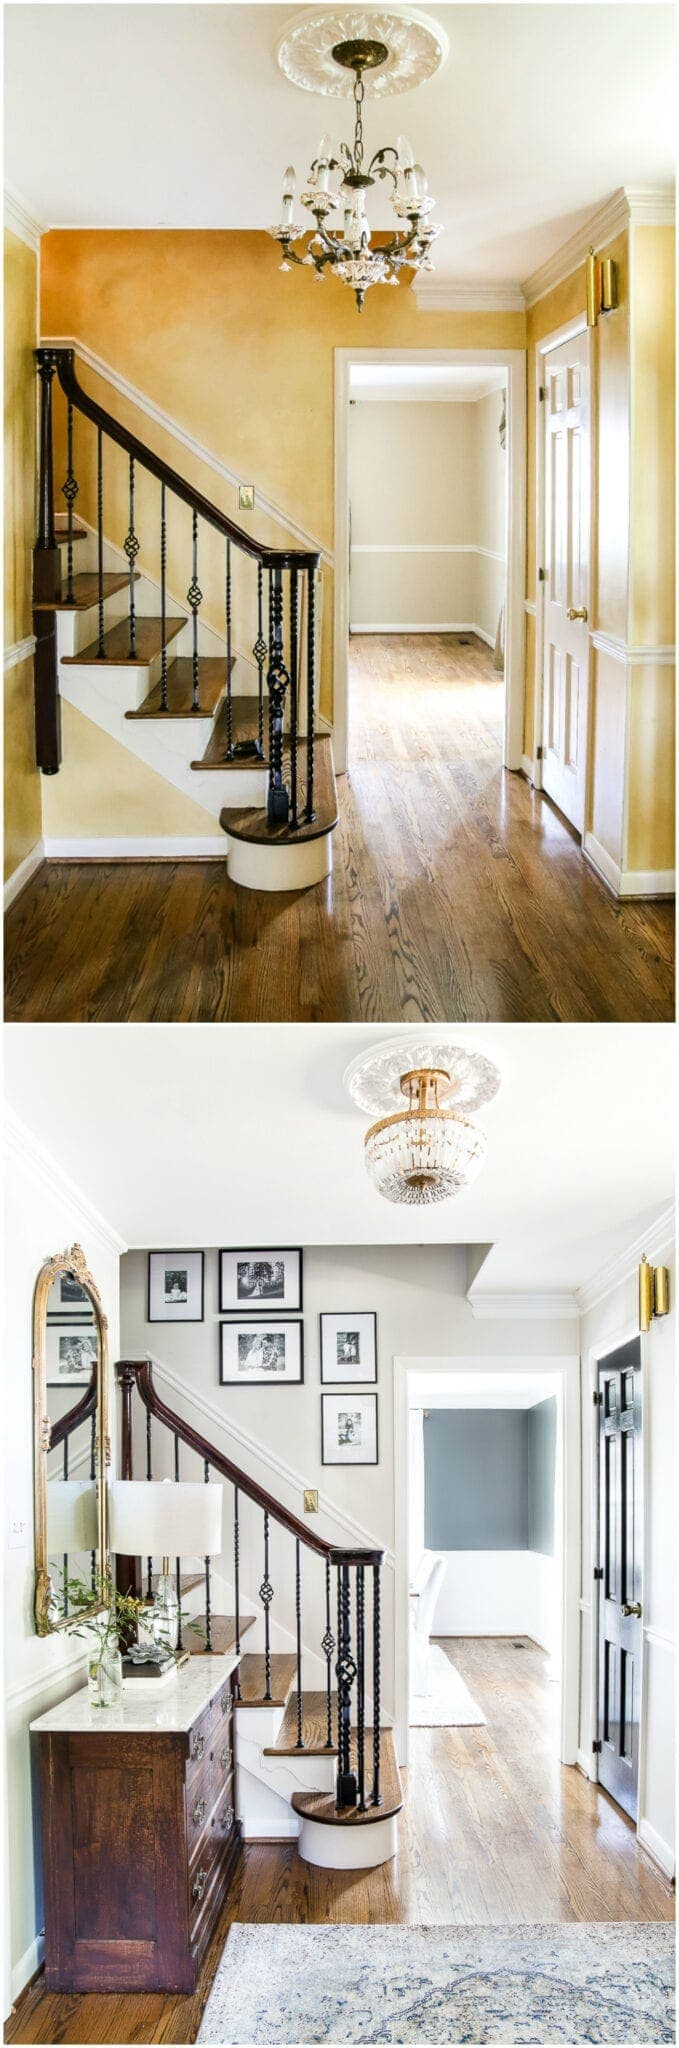 How to Hang the Perfect Gallery Wall   blesserhouse.com - How to Hang the Perfect Gallery Wall   blesserhouse.com - 5 tips to make a gallery wall look polished and one simple trick to make it quick and easy to plan. #gallerywall #walldecor #foyer #entryway